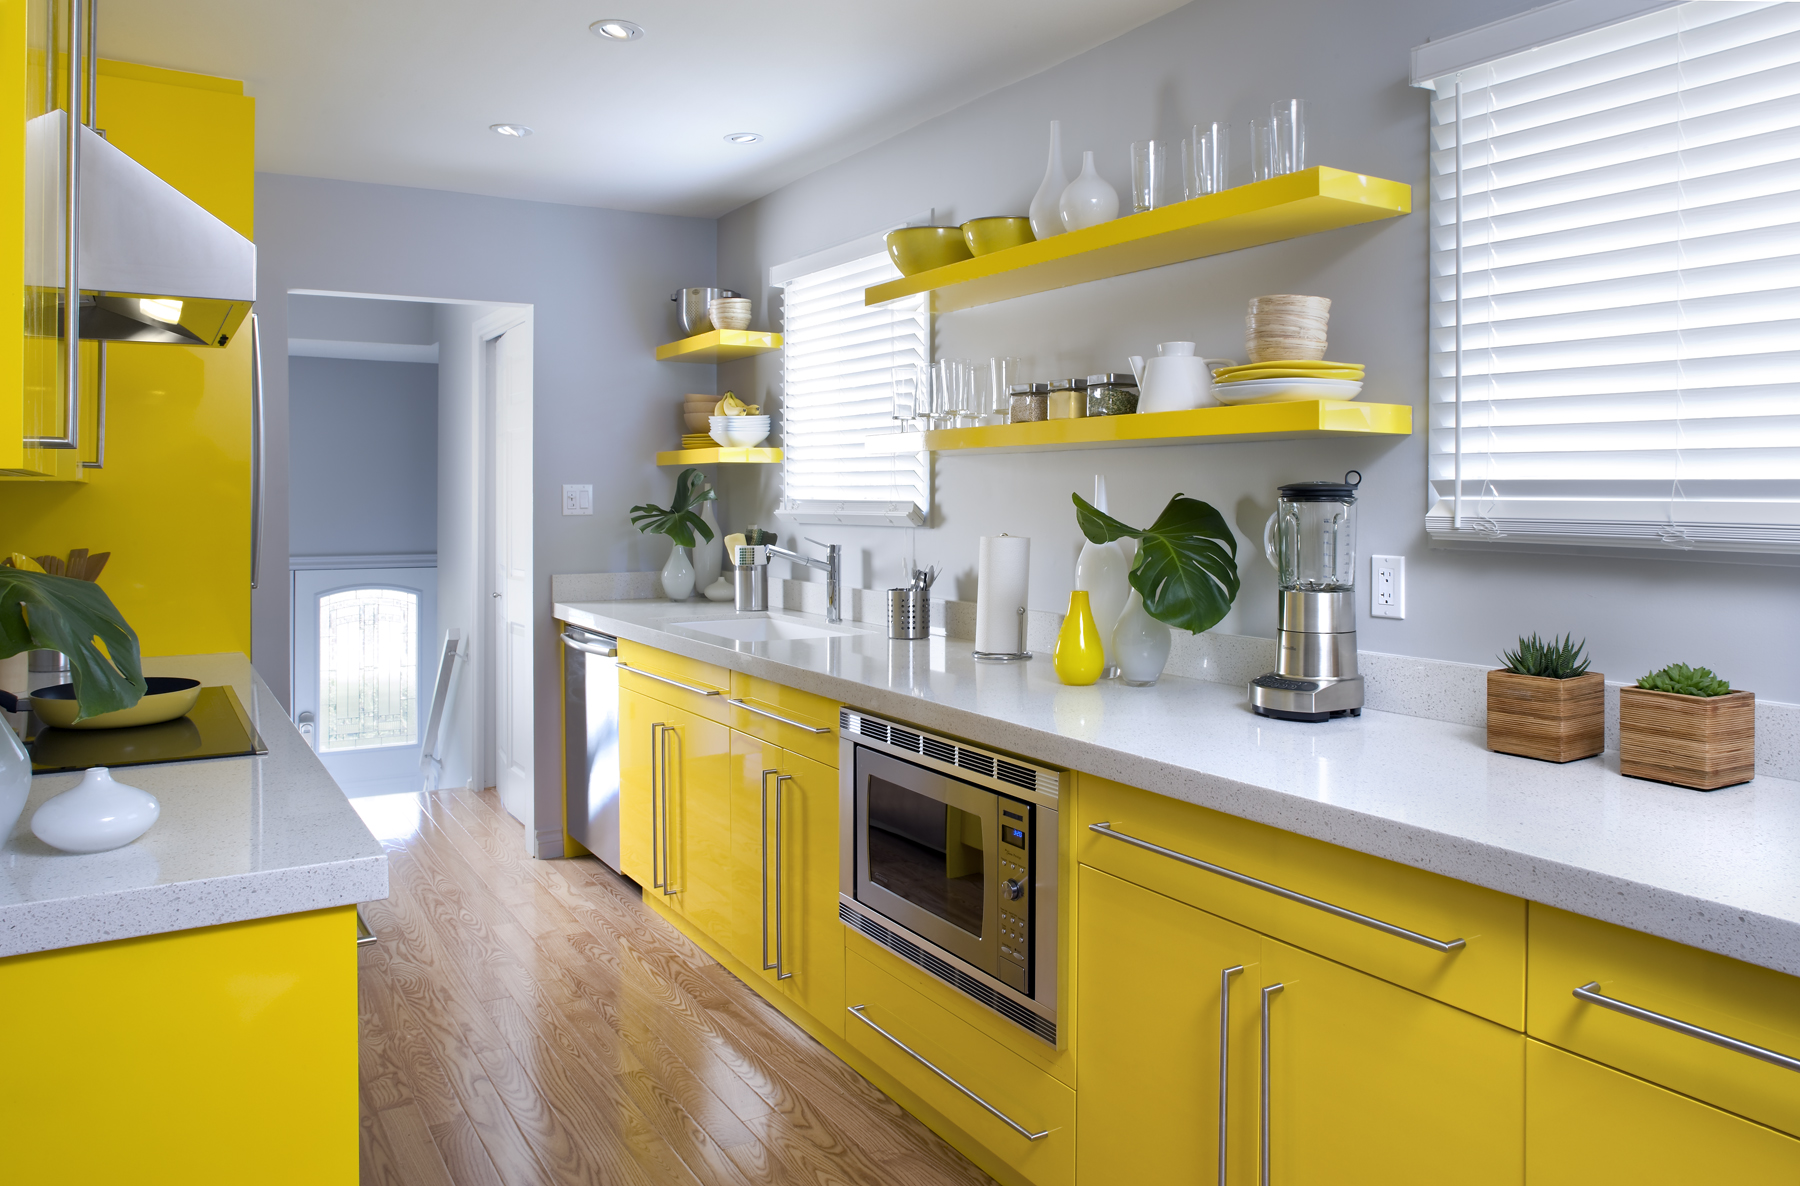 Most beautiful kitchens in the world - 2015 03 02 Hh3313 Jpg